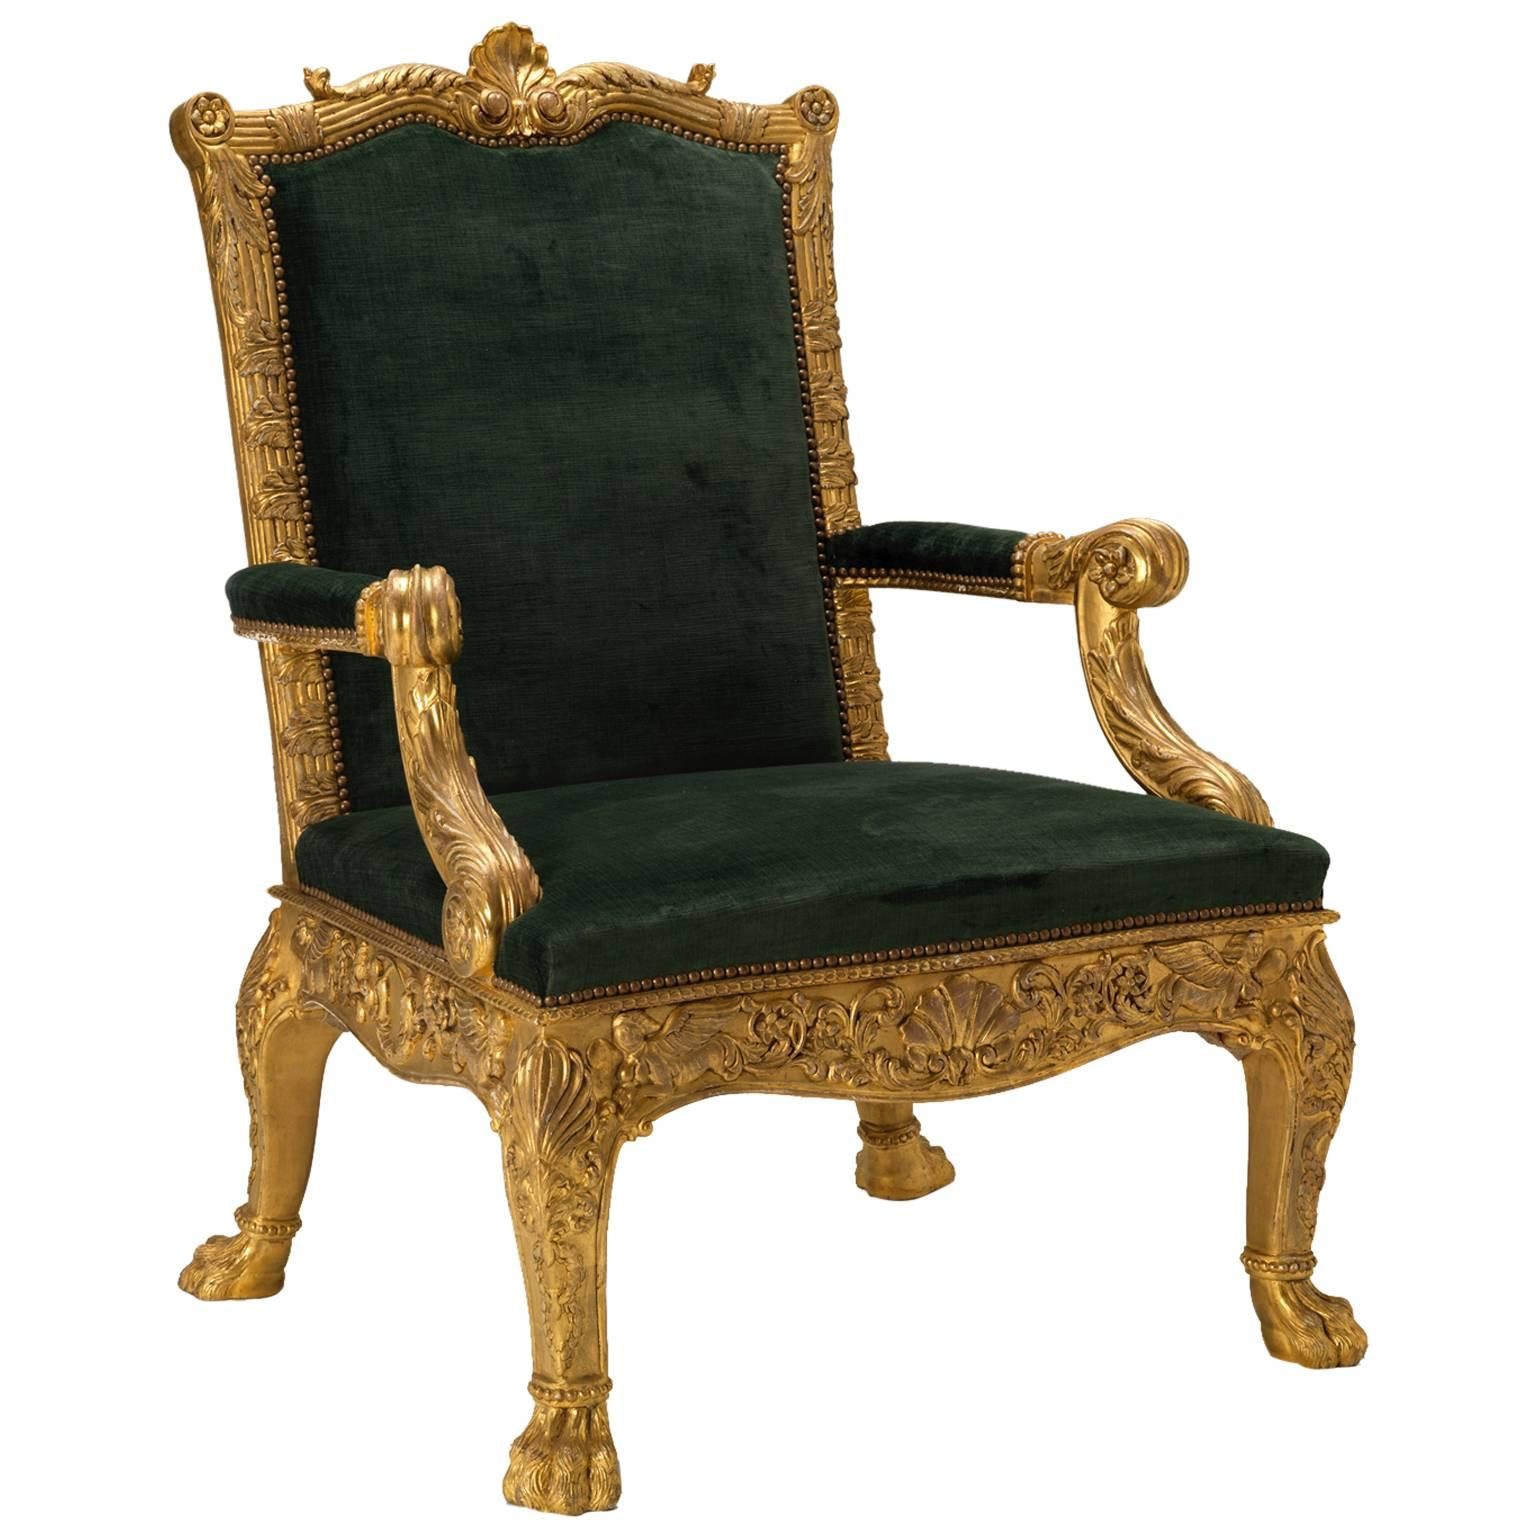 'Dundas' Library Armchairs after a model by Robert Adam and Thomas Chippendale